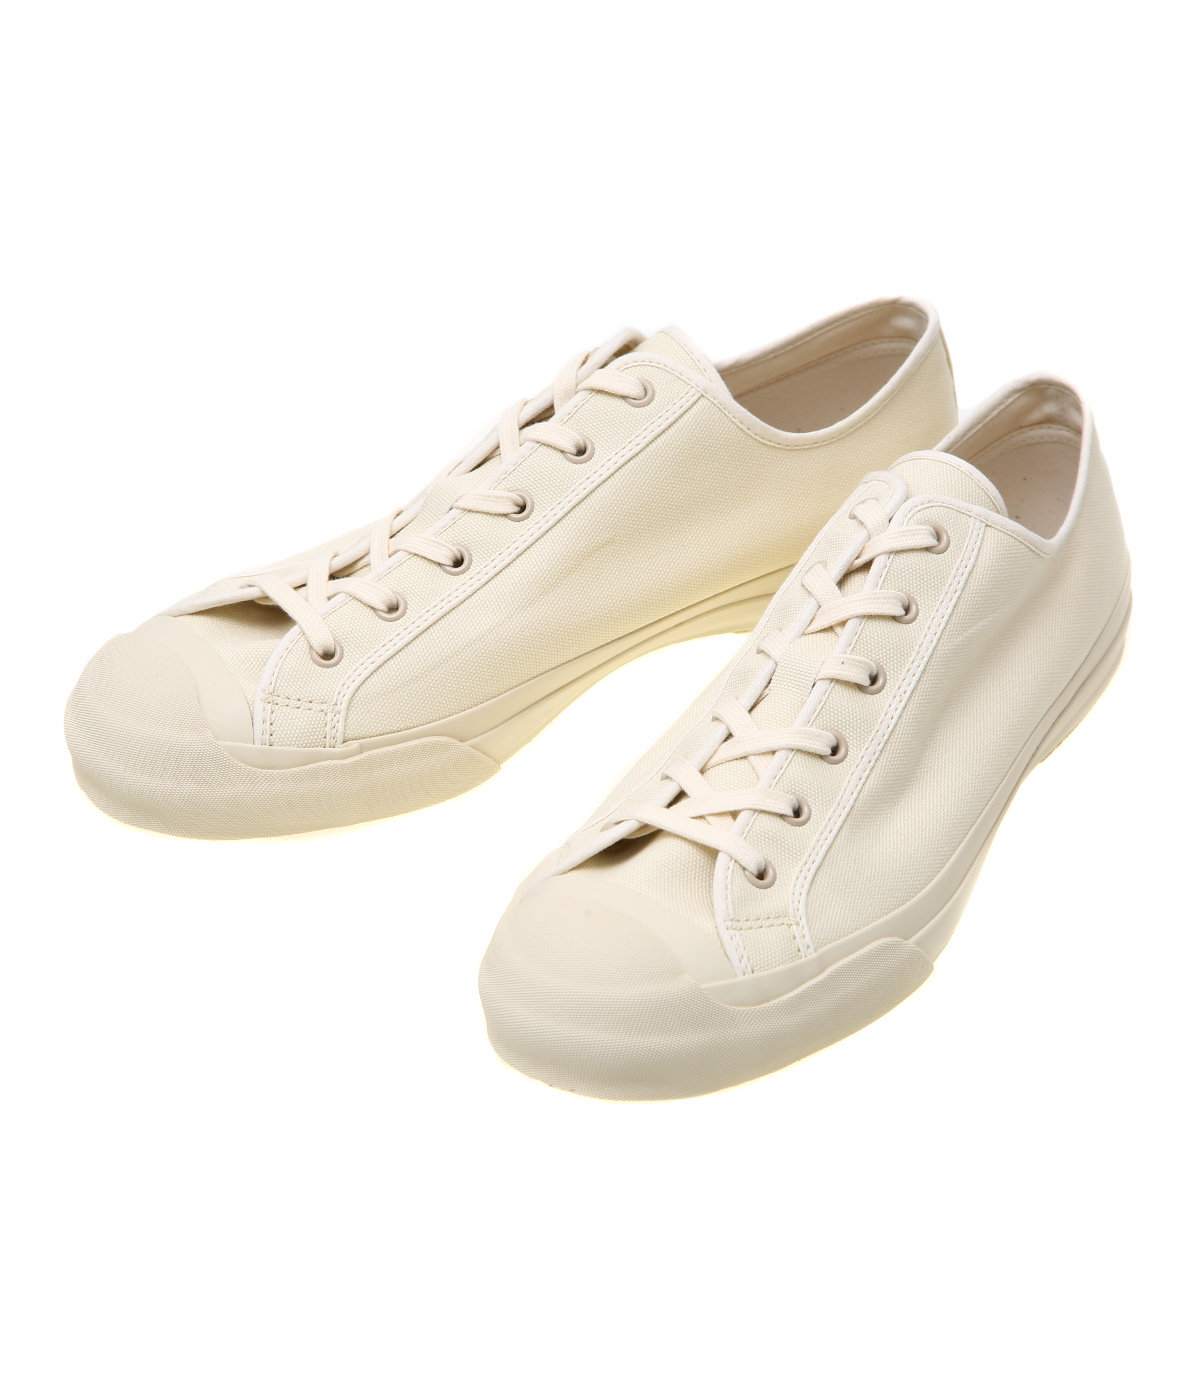 COTTON CANVAS CLASSIC VULCANISED SOLE CANVAS SHOSE